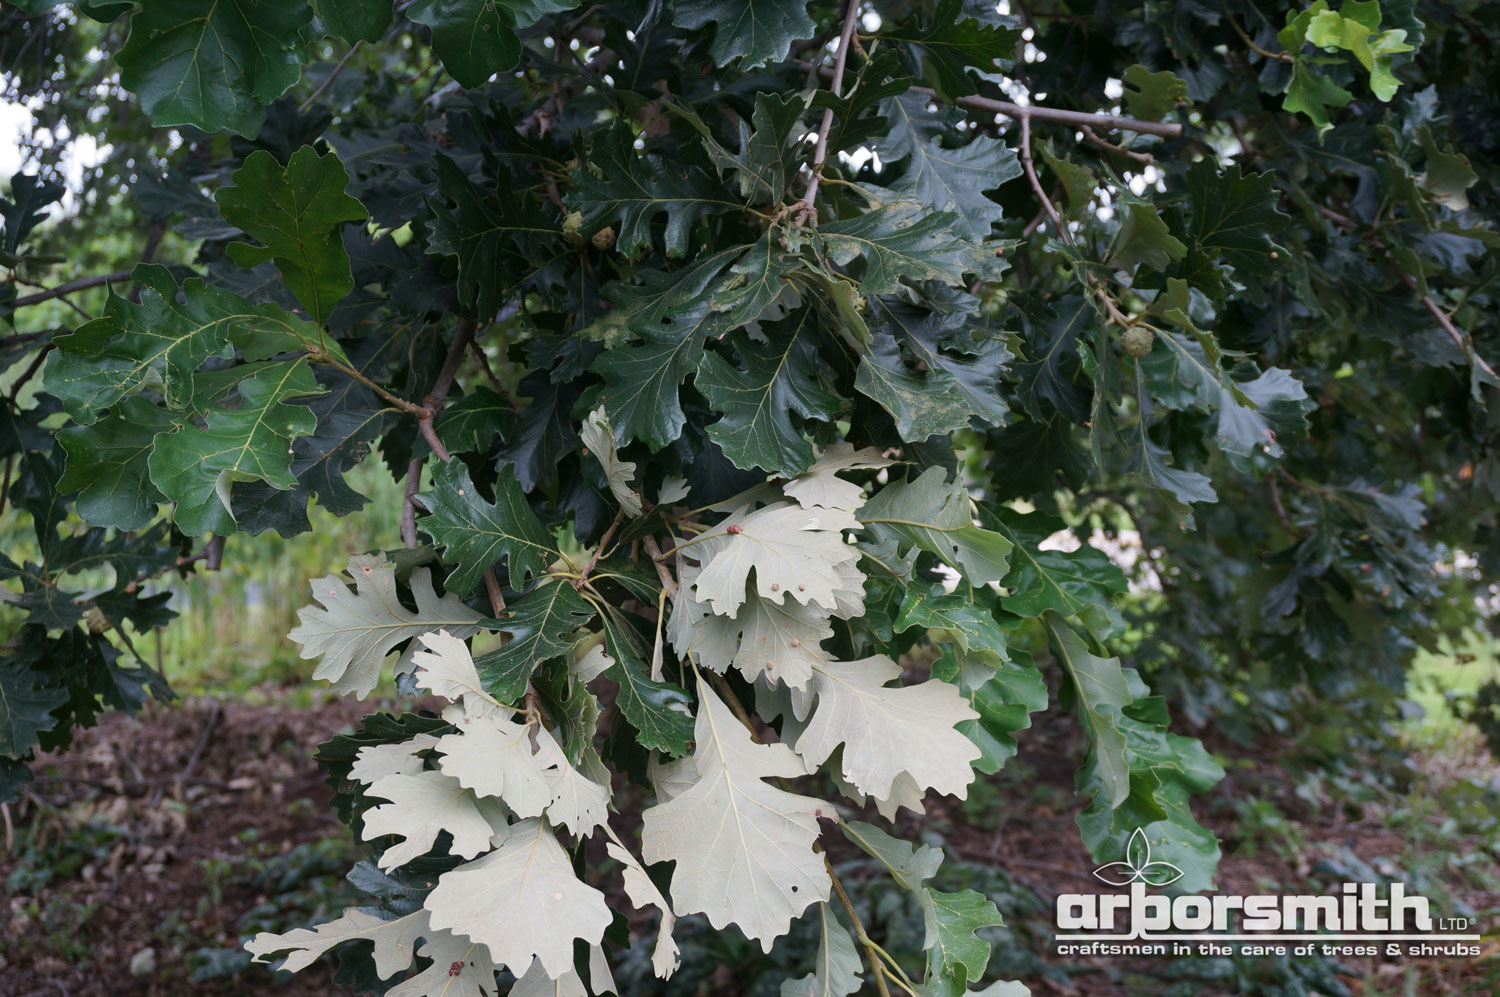 Silver Grey and Green of the Burr Oak leaves